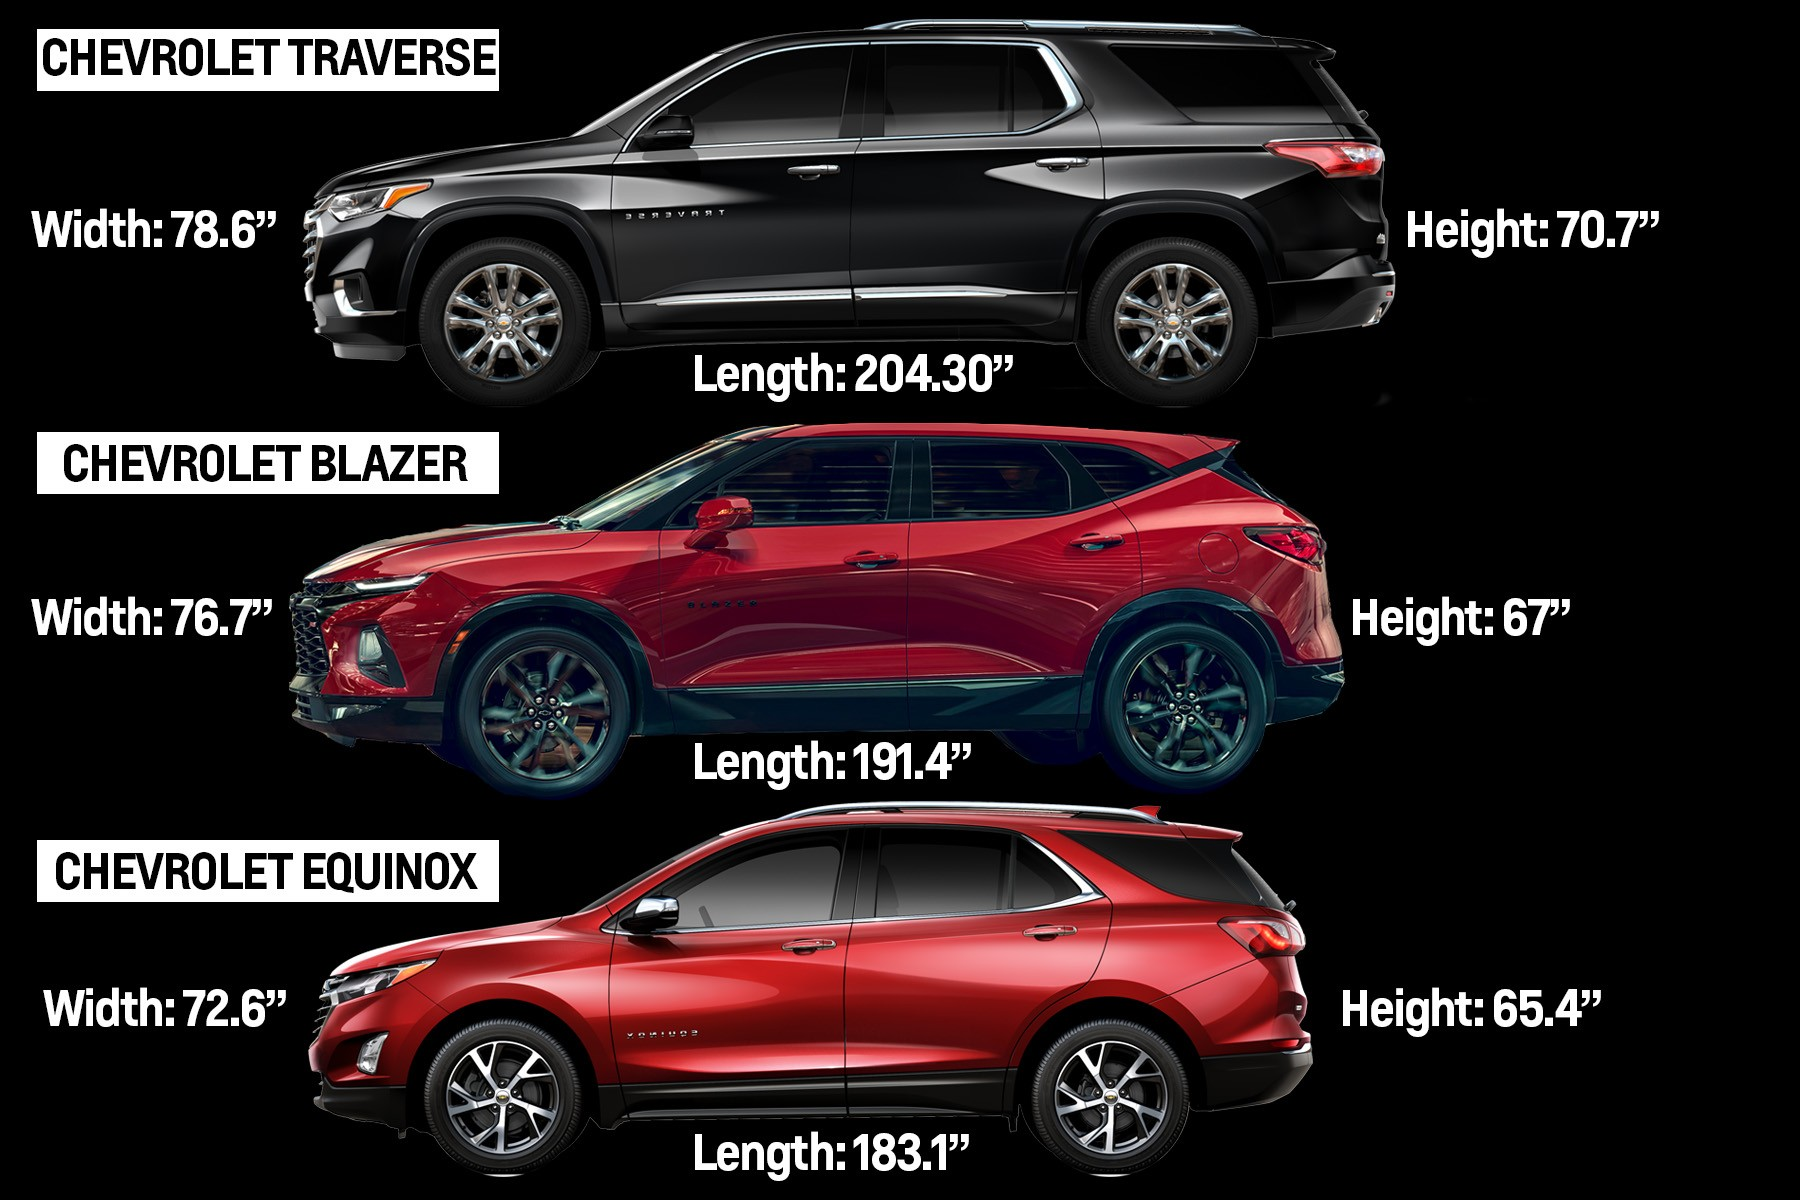 2019 Chevrolet Equinox Vs Blazer - Chevrolet Cars Review ...